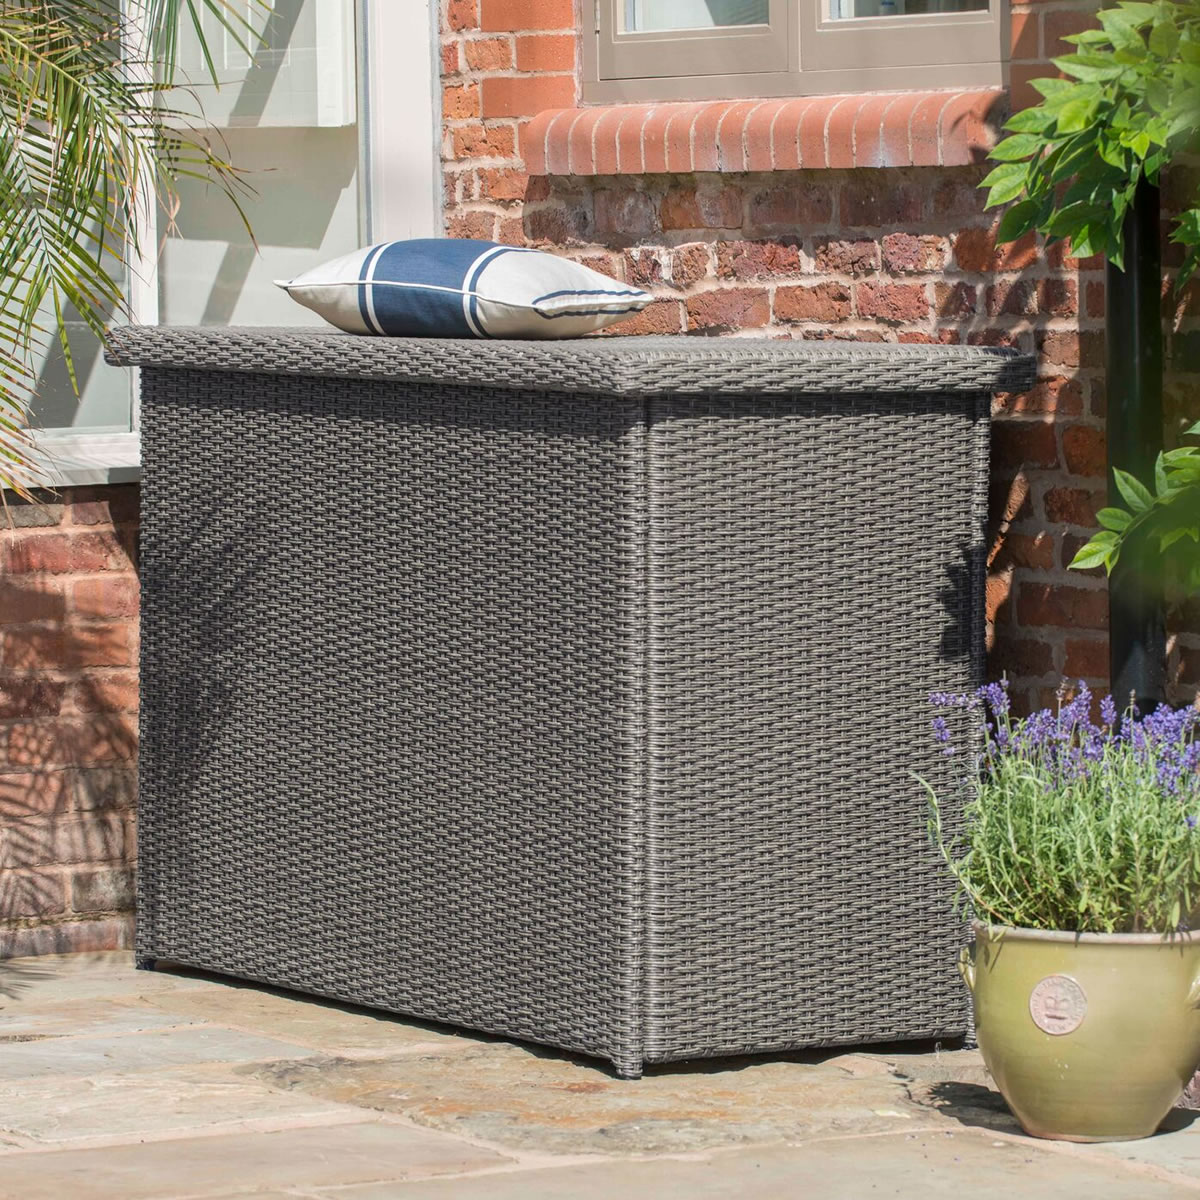 Small Image Of 2018 Hartman Madison Weave Cushion Storage Box In Slate ...